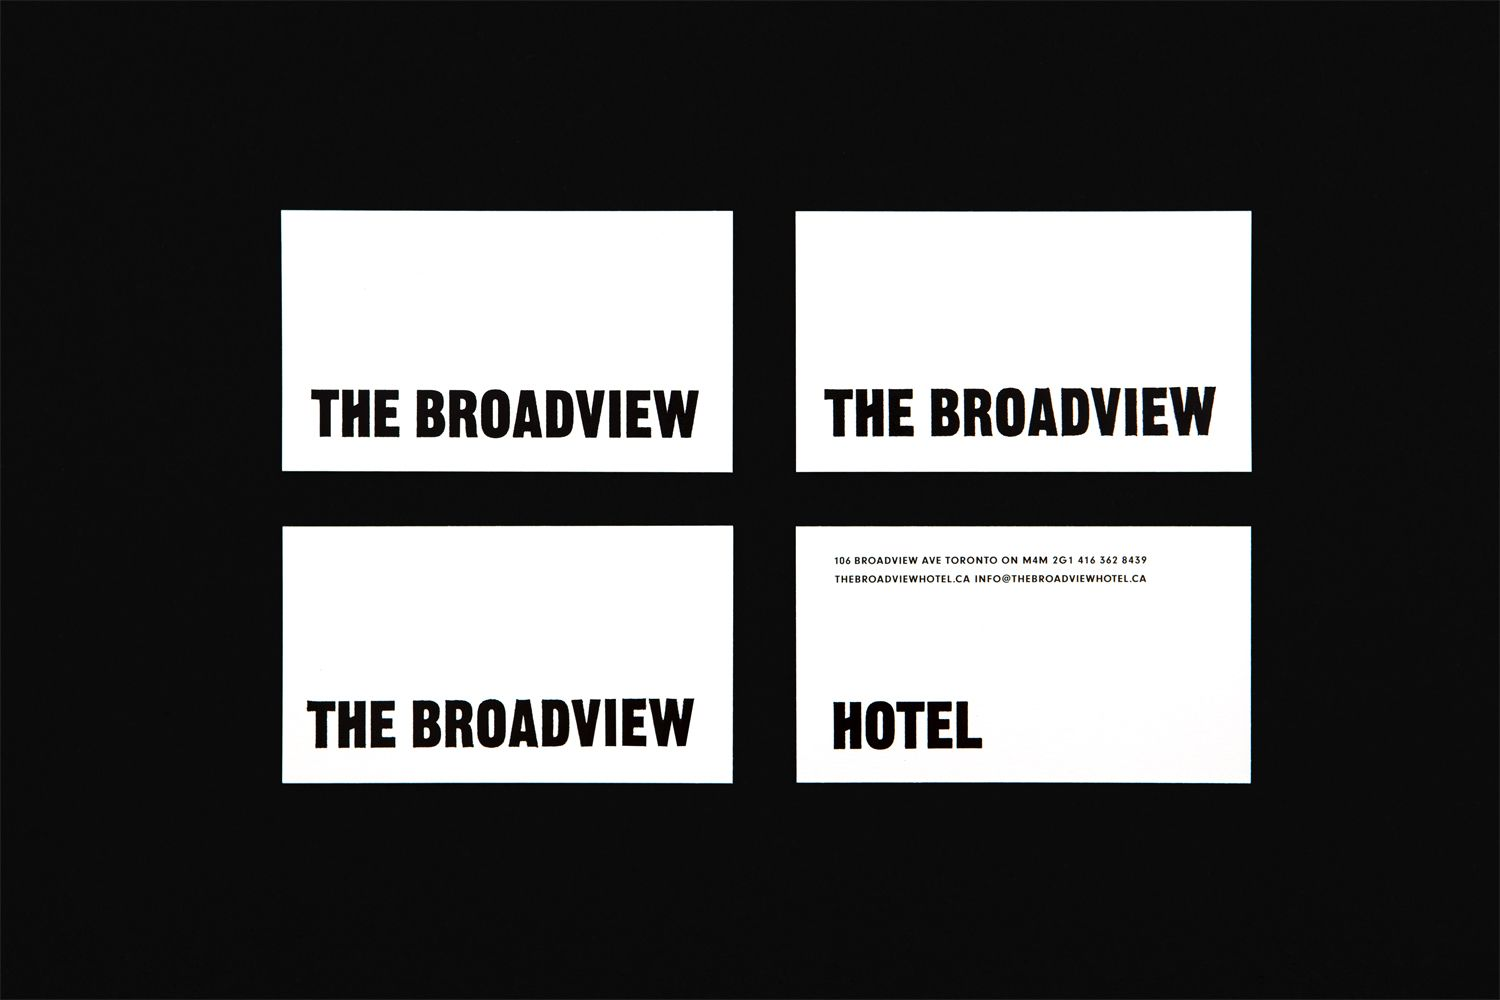 New Brand Identity for The Broadview Hotel by Blok — BP&O | Business ...